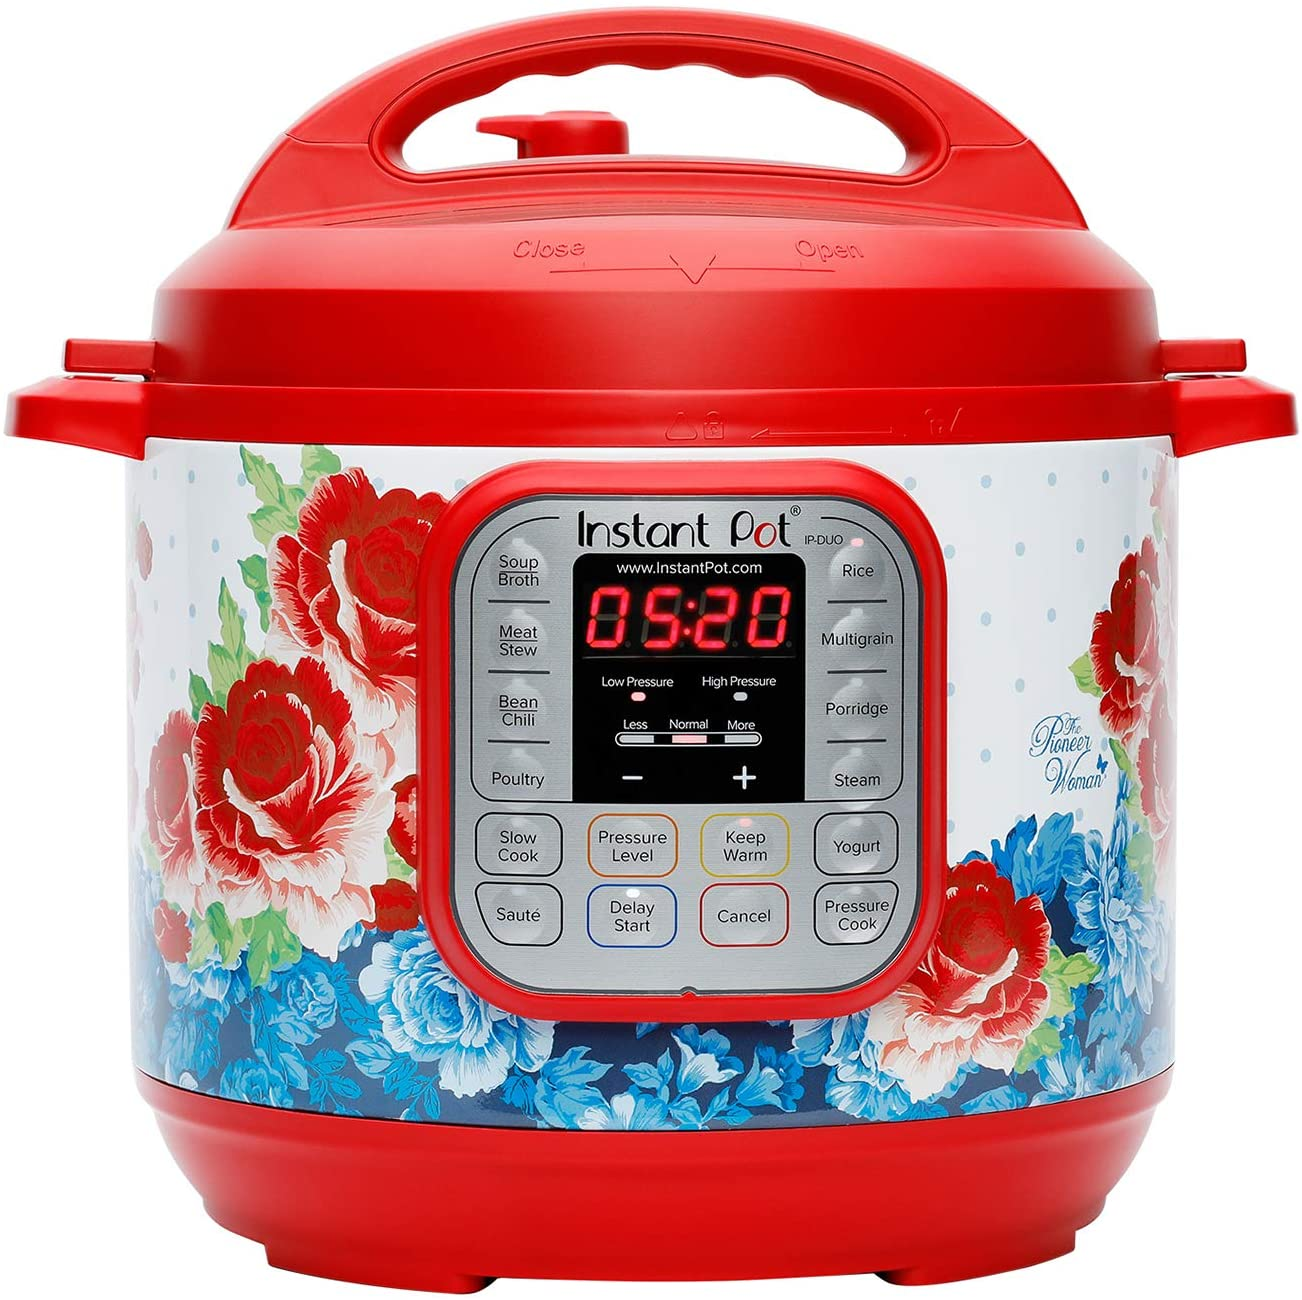 The Pioneer Woman Instant Pot DUO60 6-Quart Frontier Rose 7-In-1 Multi-Use Programmable Pressure Cooker, Slow Cooker, Rice Cooker, Sauté, Steamer, Yogurt Maker, and Warmer